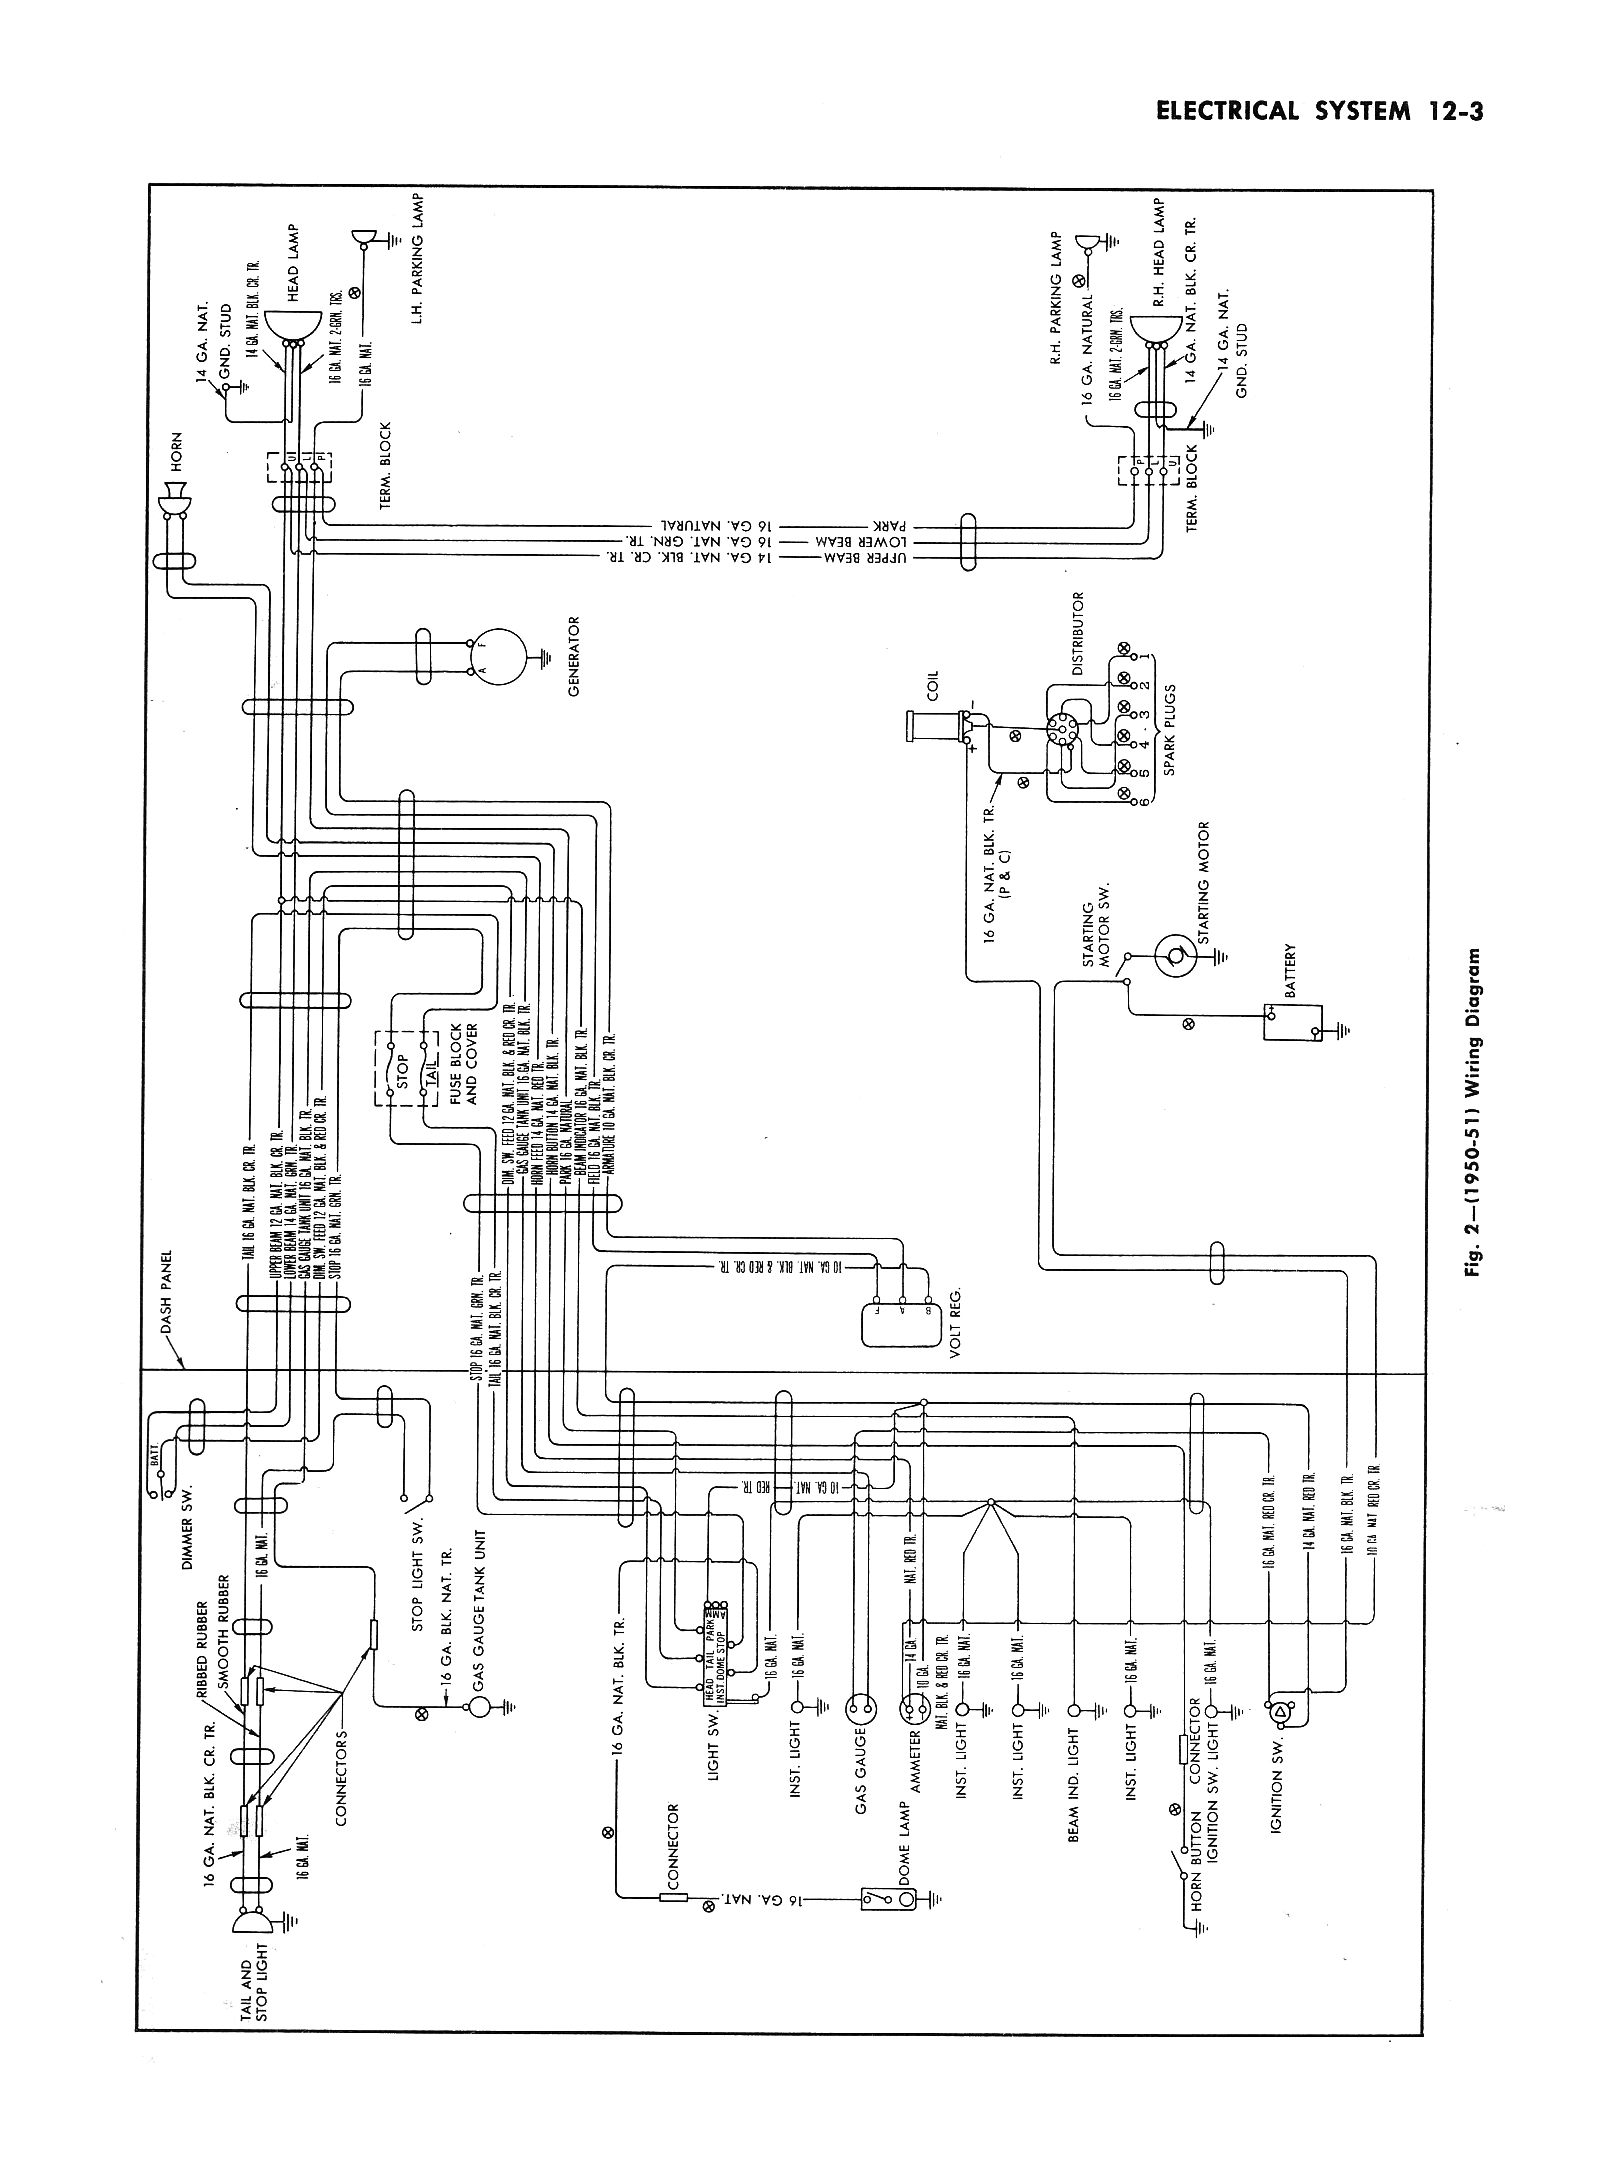 Ford Wiring Diagram For 50